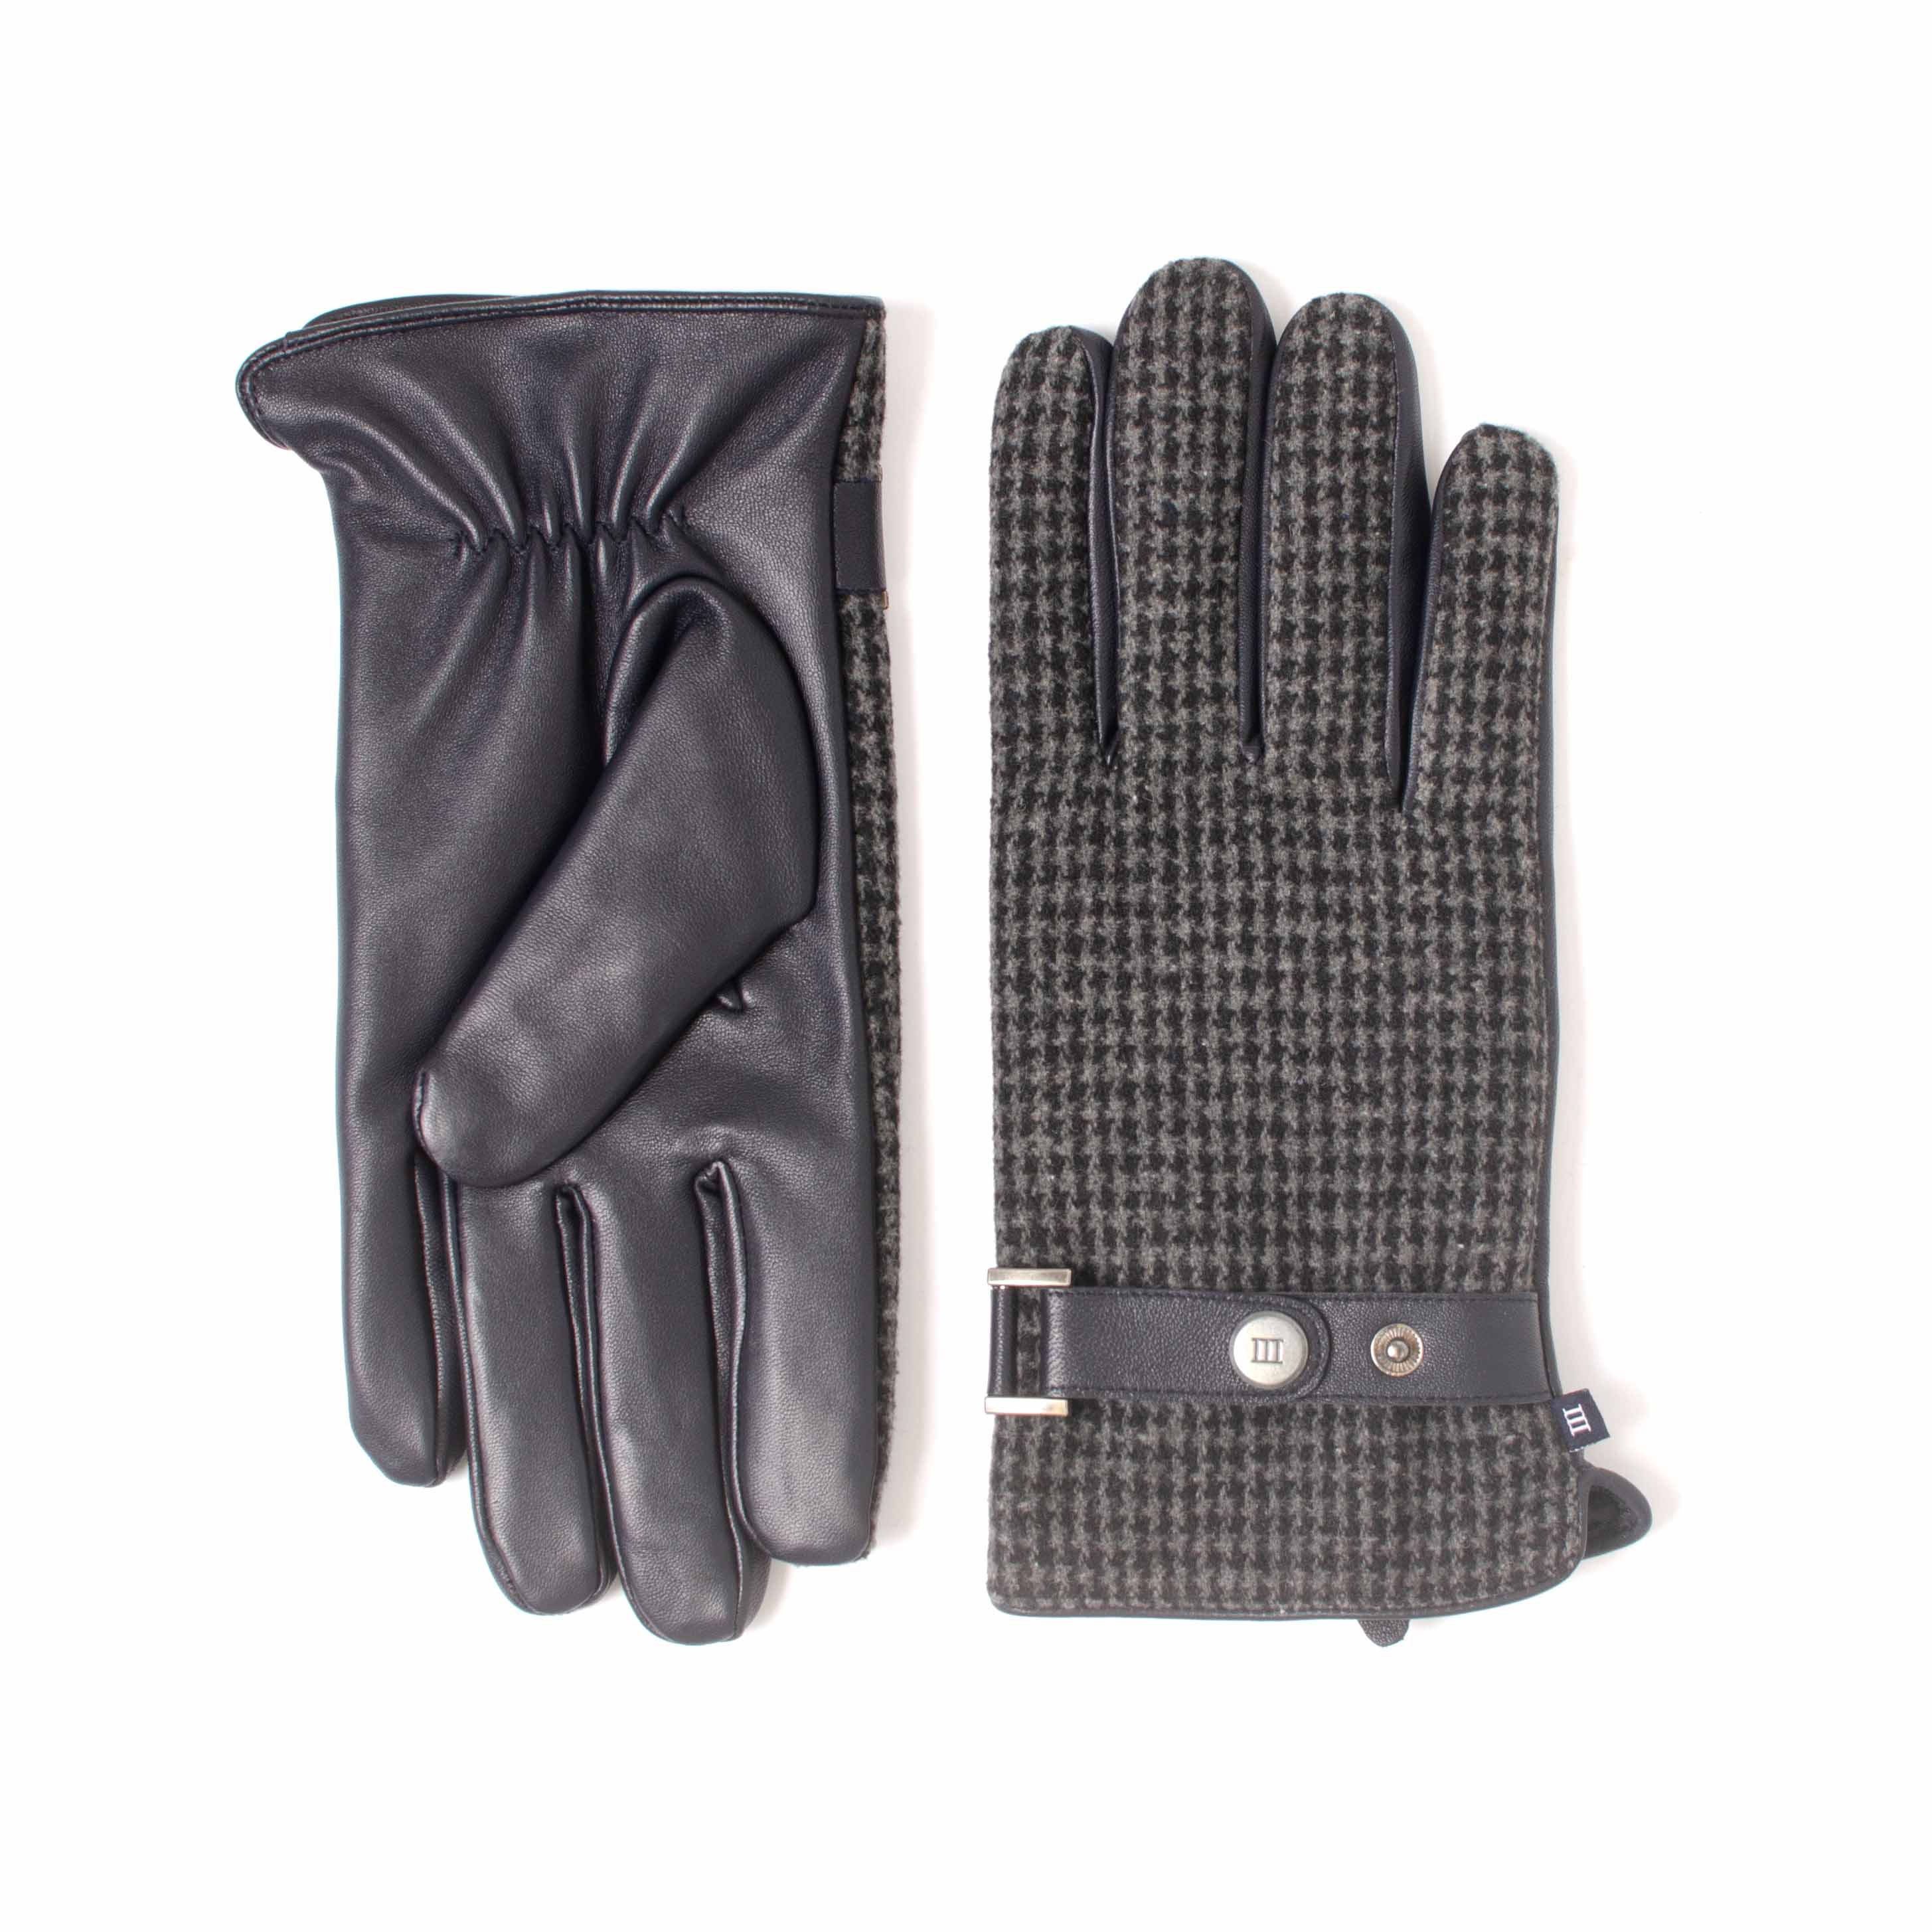 ELIRAN | Navy gloves made of leather and fabrick with a pied-de-poule dessin